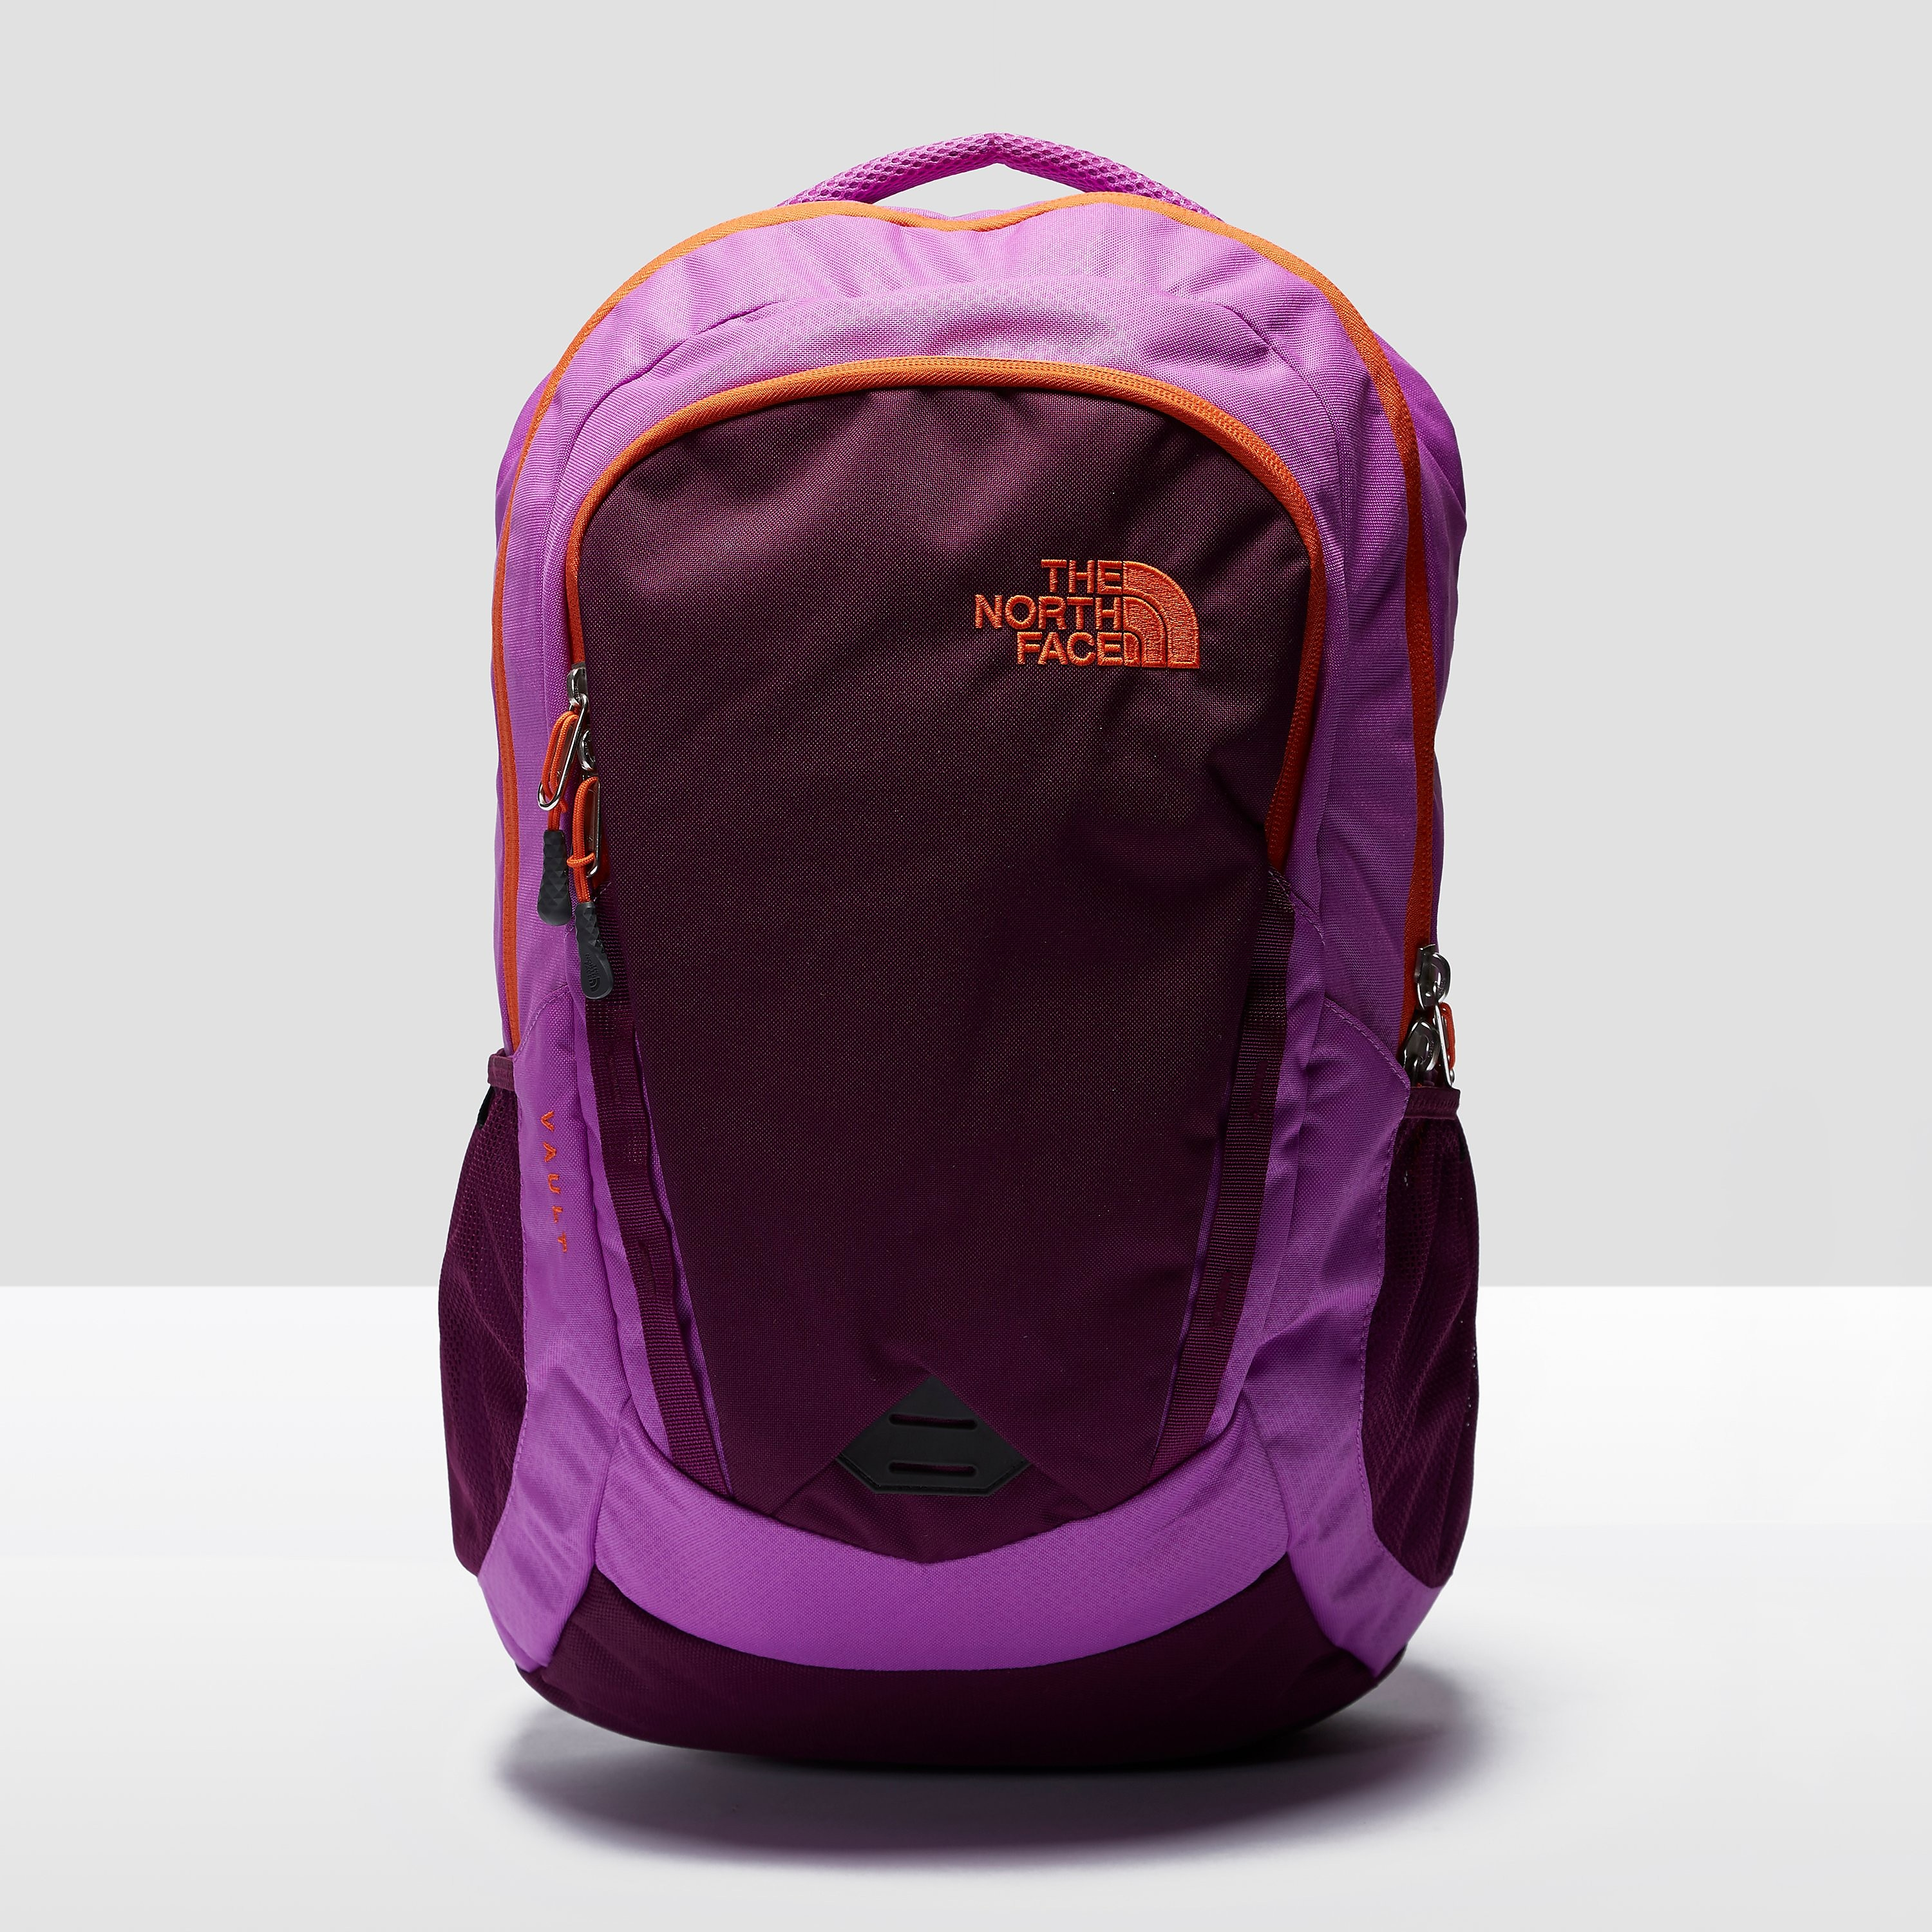 The North Face Women's Vault 28 Backpack